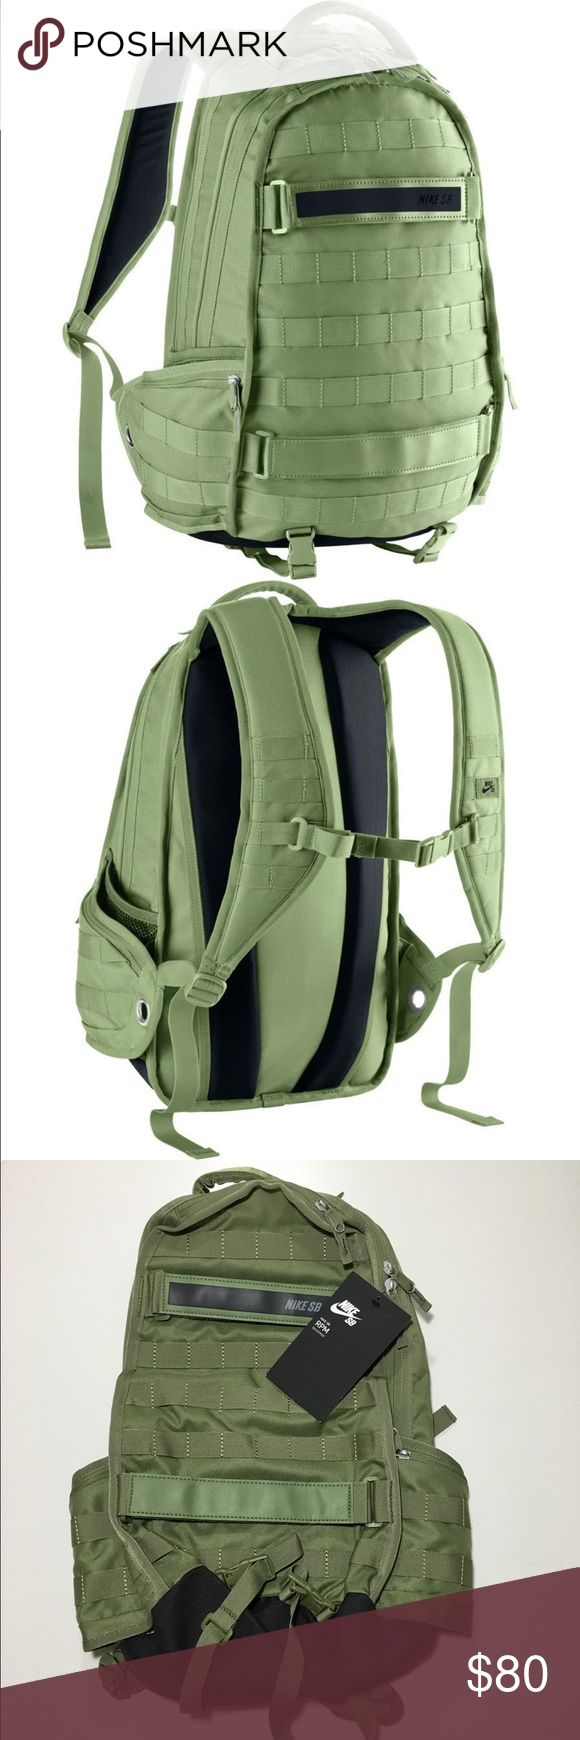 Nike SB RPM Skateboarding Backpack PALM GREEN ✅Brand new with tags. Directly from NIKE. ✅Will Ship Out Next Day (Mon-Fri) ✅Send any other ❓my way! No Trades sorry!.                            Thanks for looking! ✌ Nike Bags Backpacks